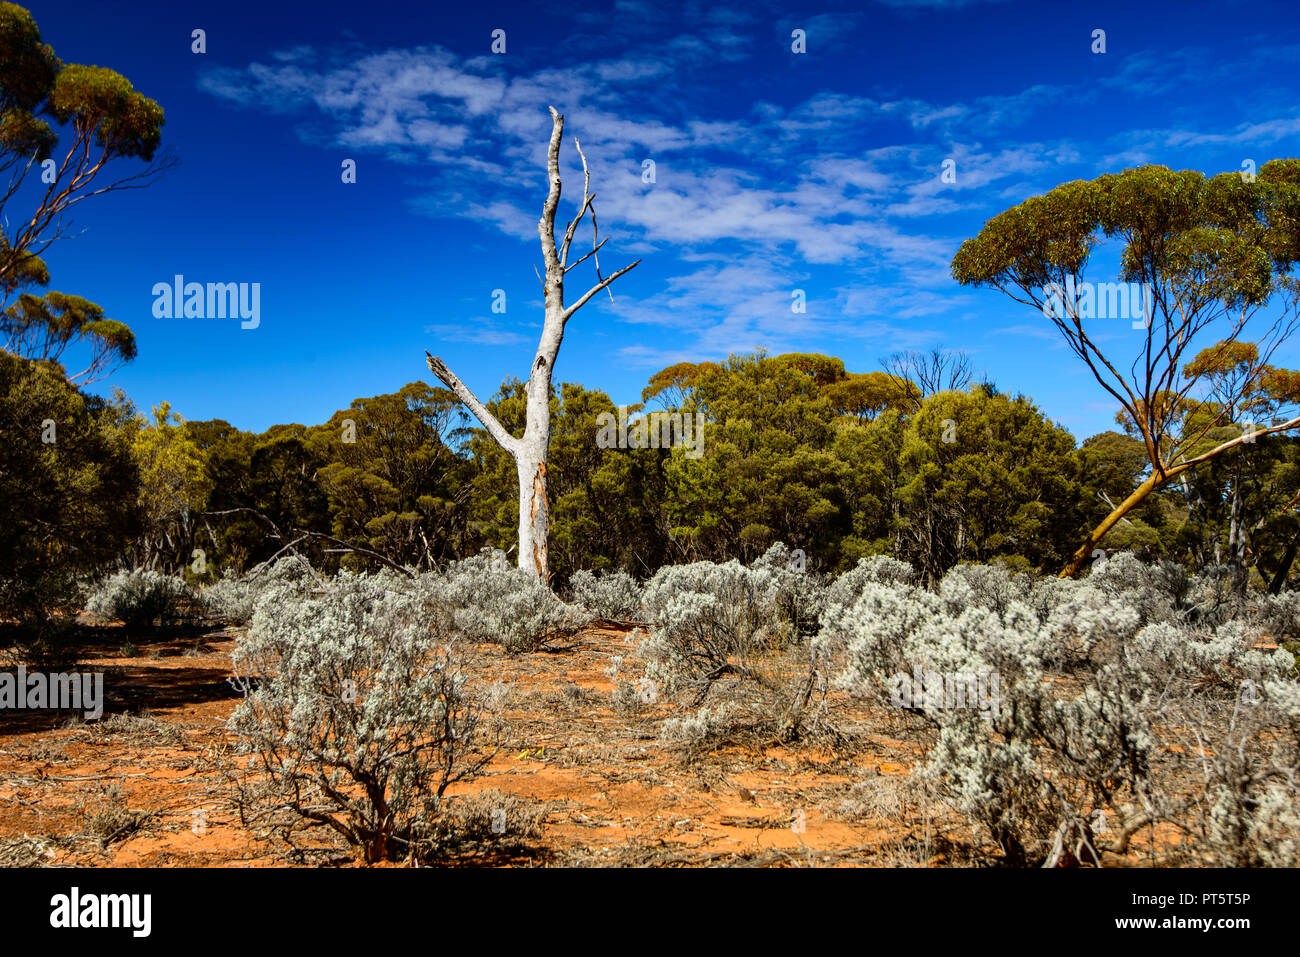 white trunk of a dead Gum tree surrounded by bright Silver Ball bushes and an eucalyptus forest. - Stock Image